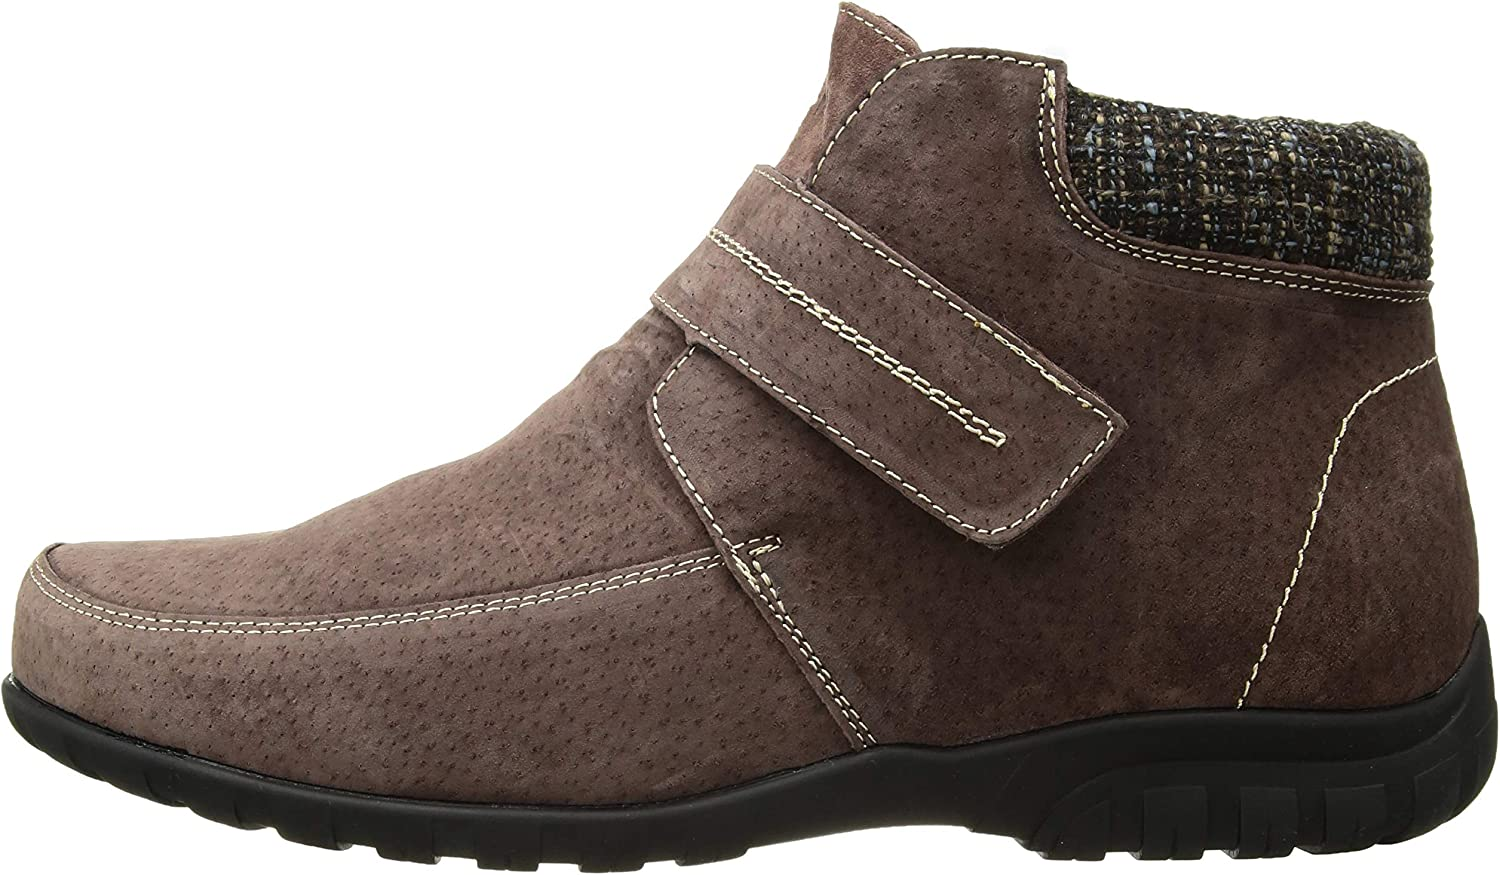 Brown Suede 9.5 2X-Wide Propet Womens Delaney Strap Ankle Boot